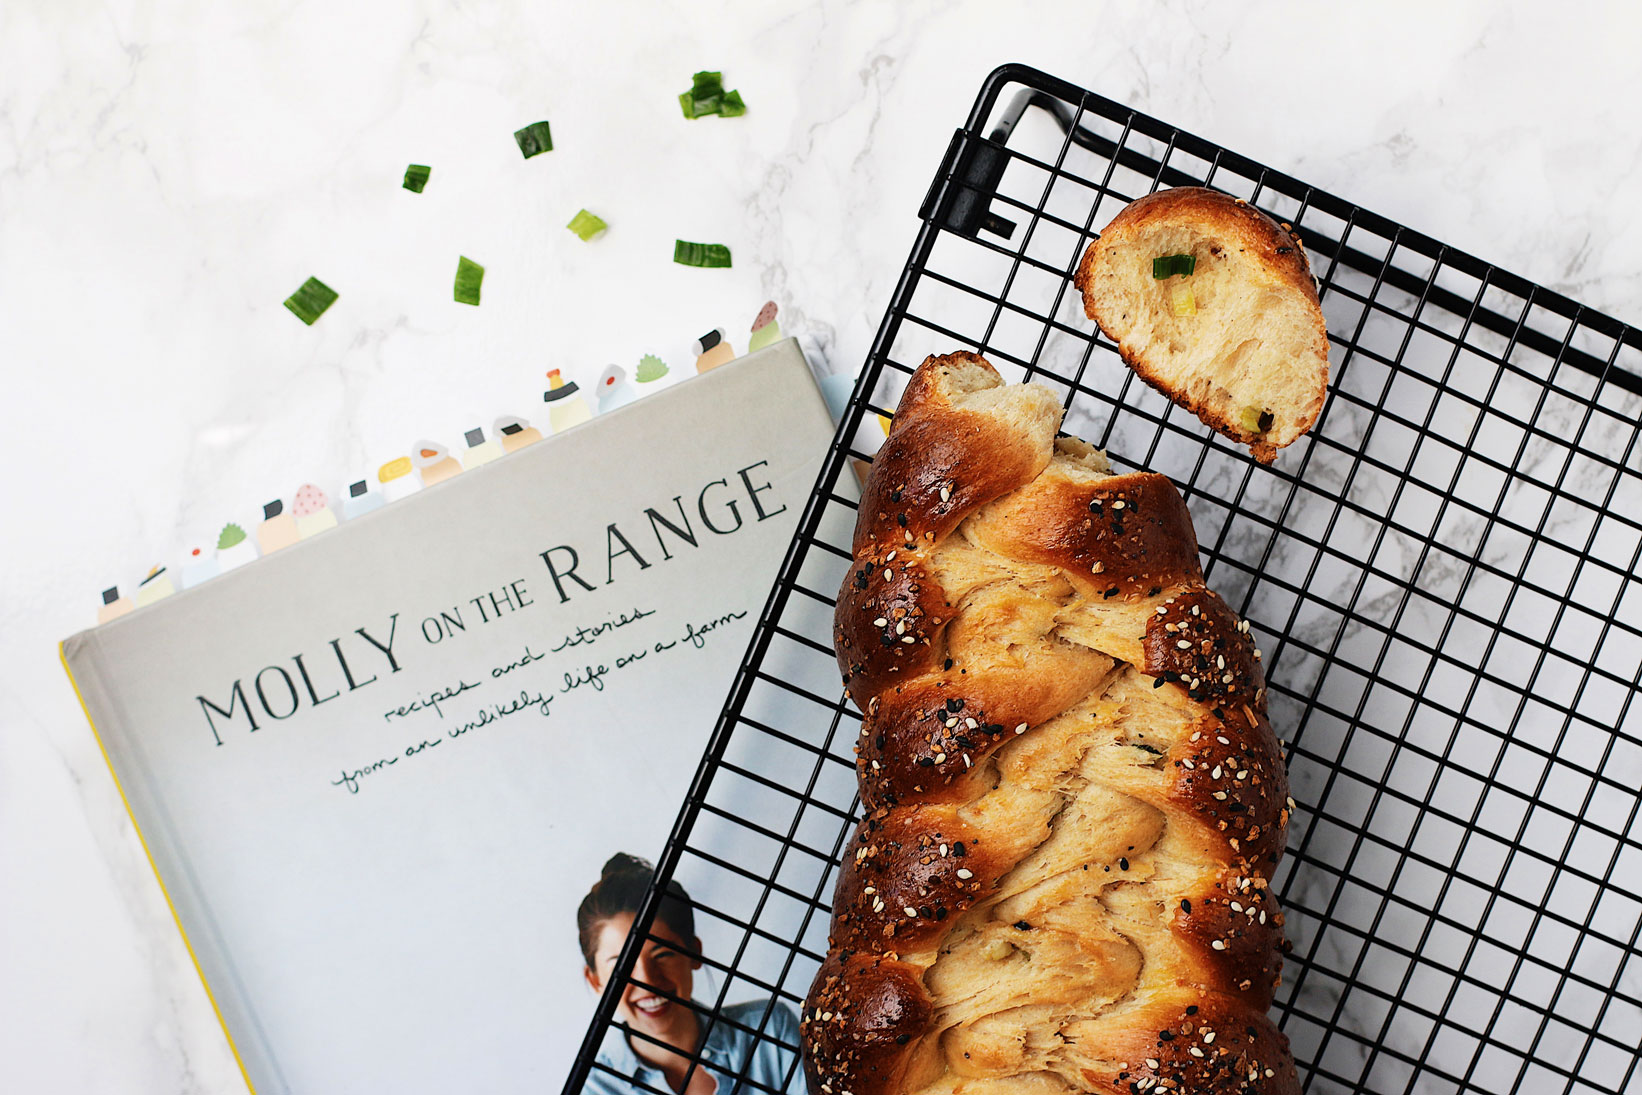 Her-Cookbook-Club-Molly-On-the-Range-bakka